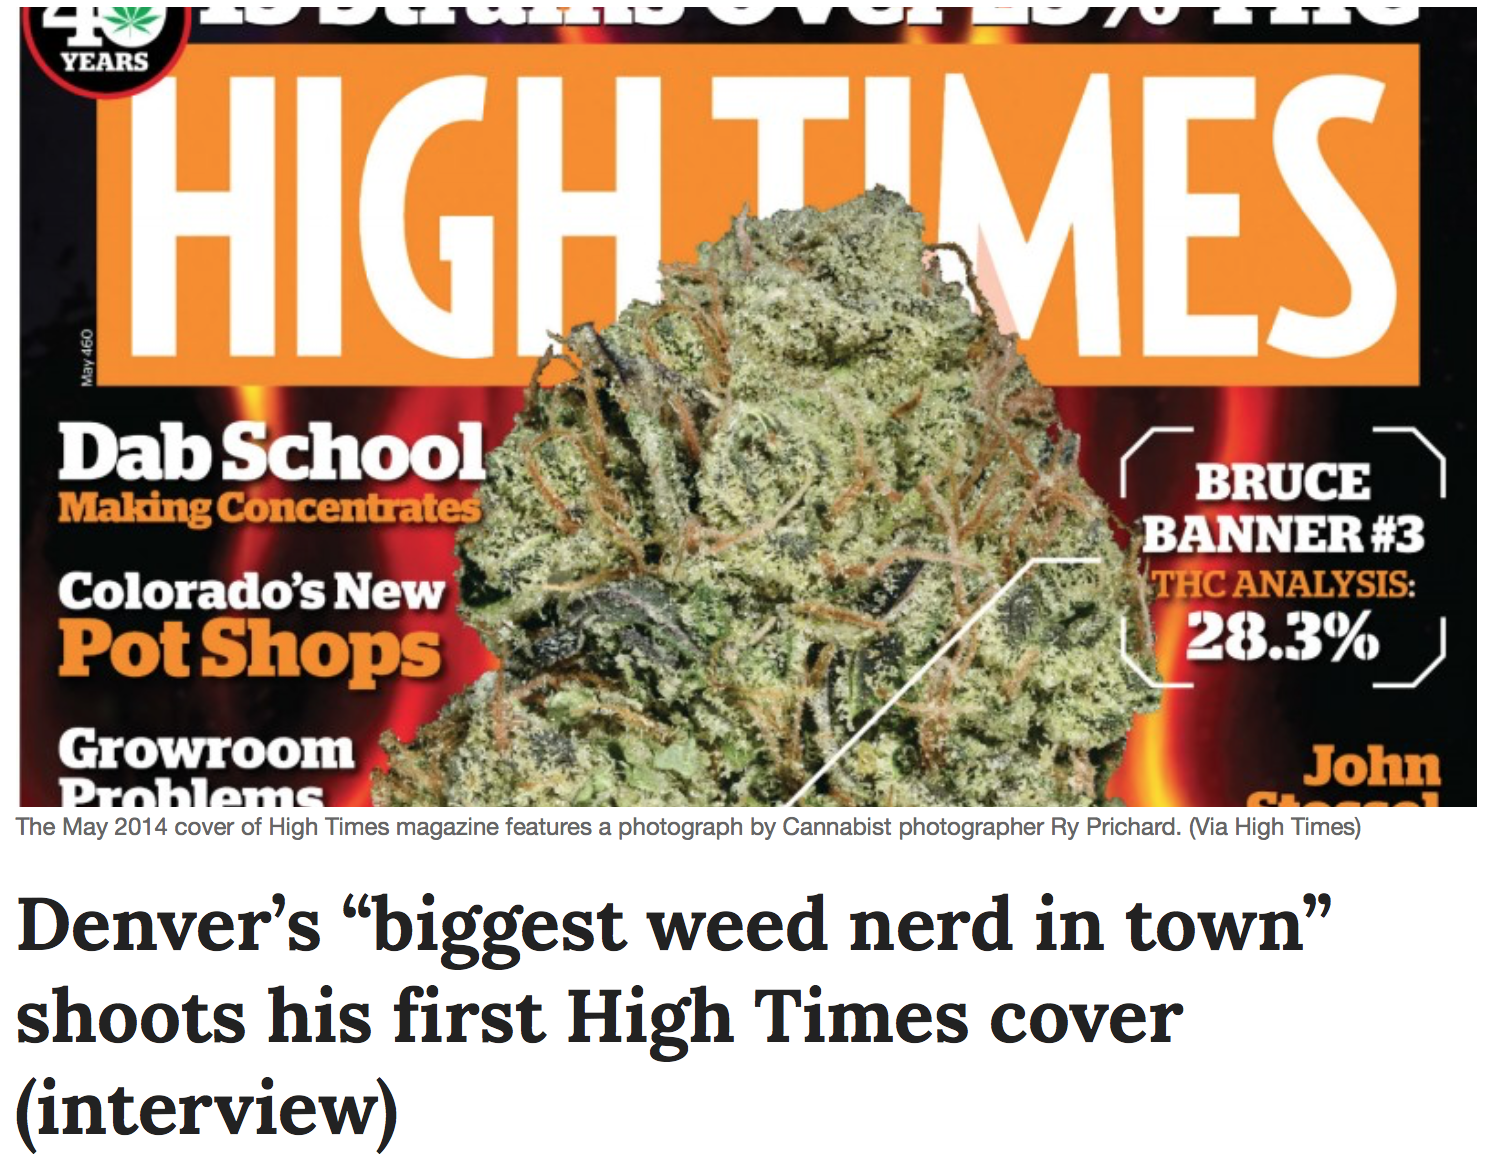 """""""Denver's """"biggest weed nerd in town"""" shoots his first High Times cover (interview)"""" - The Cannabist, Mar. '14"""